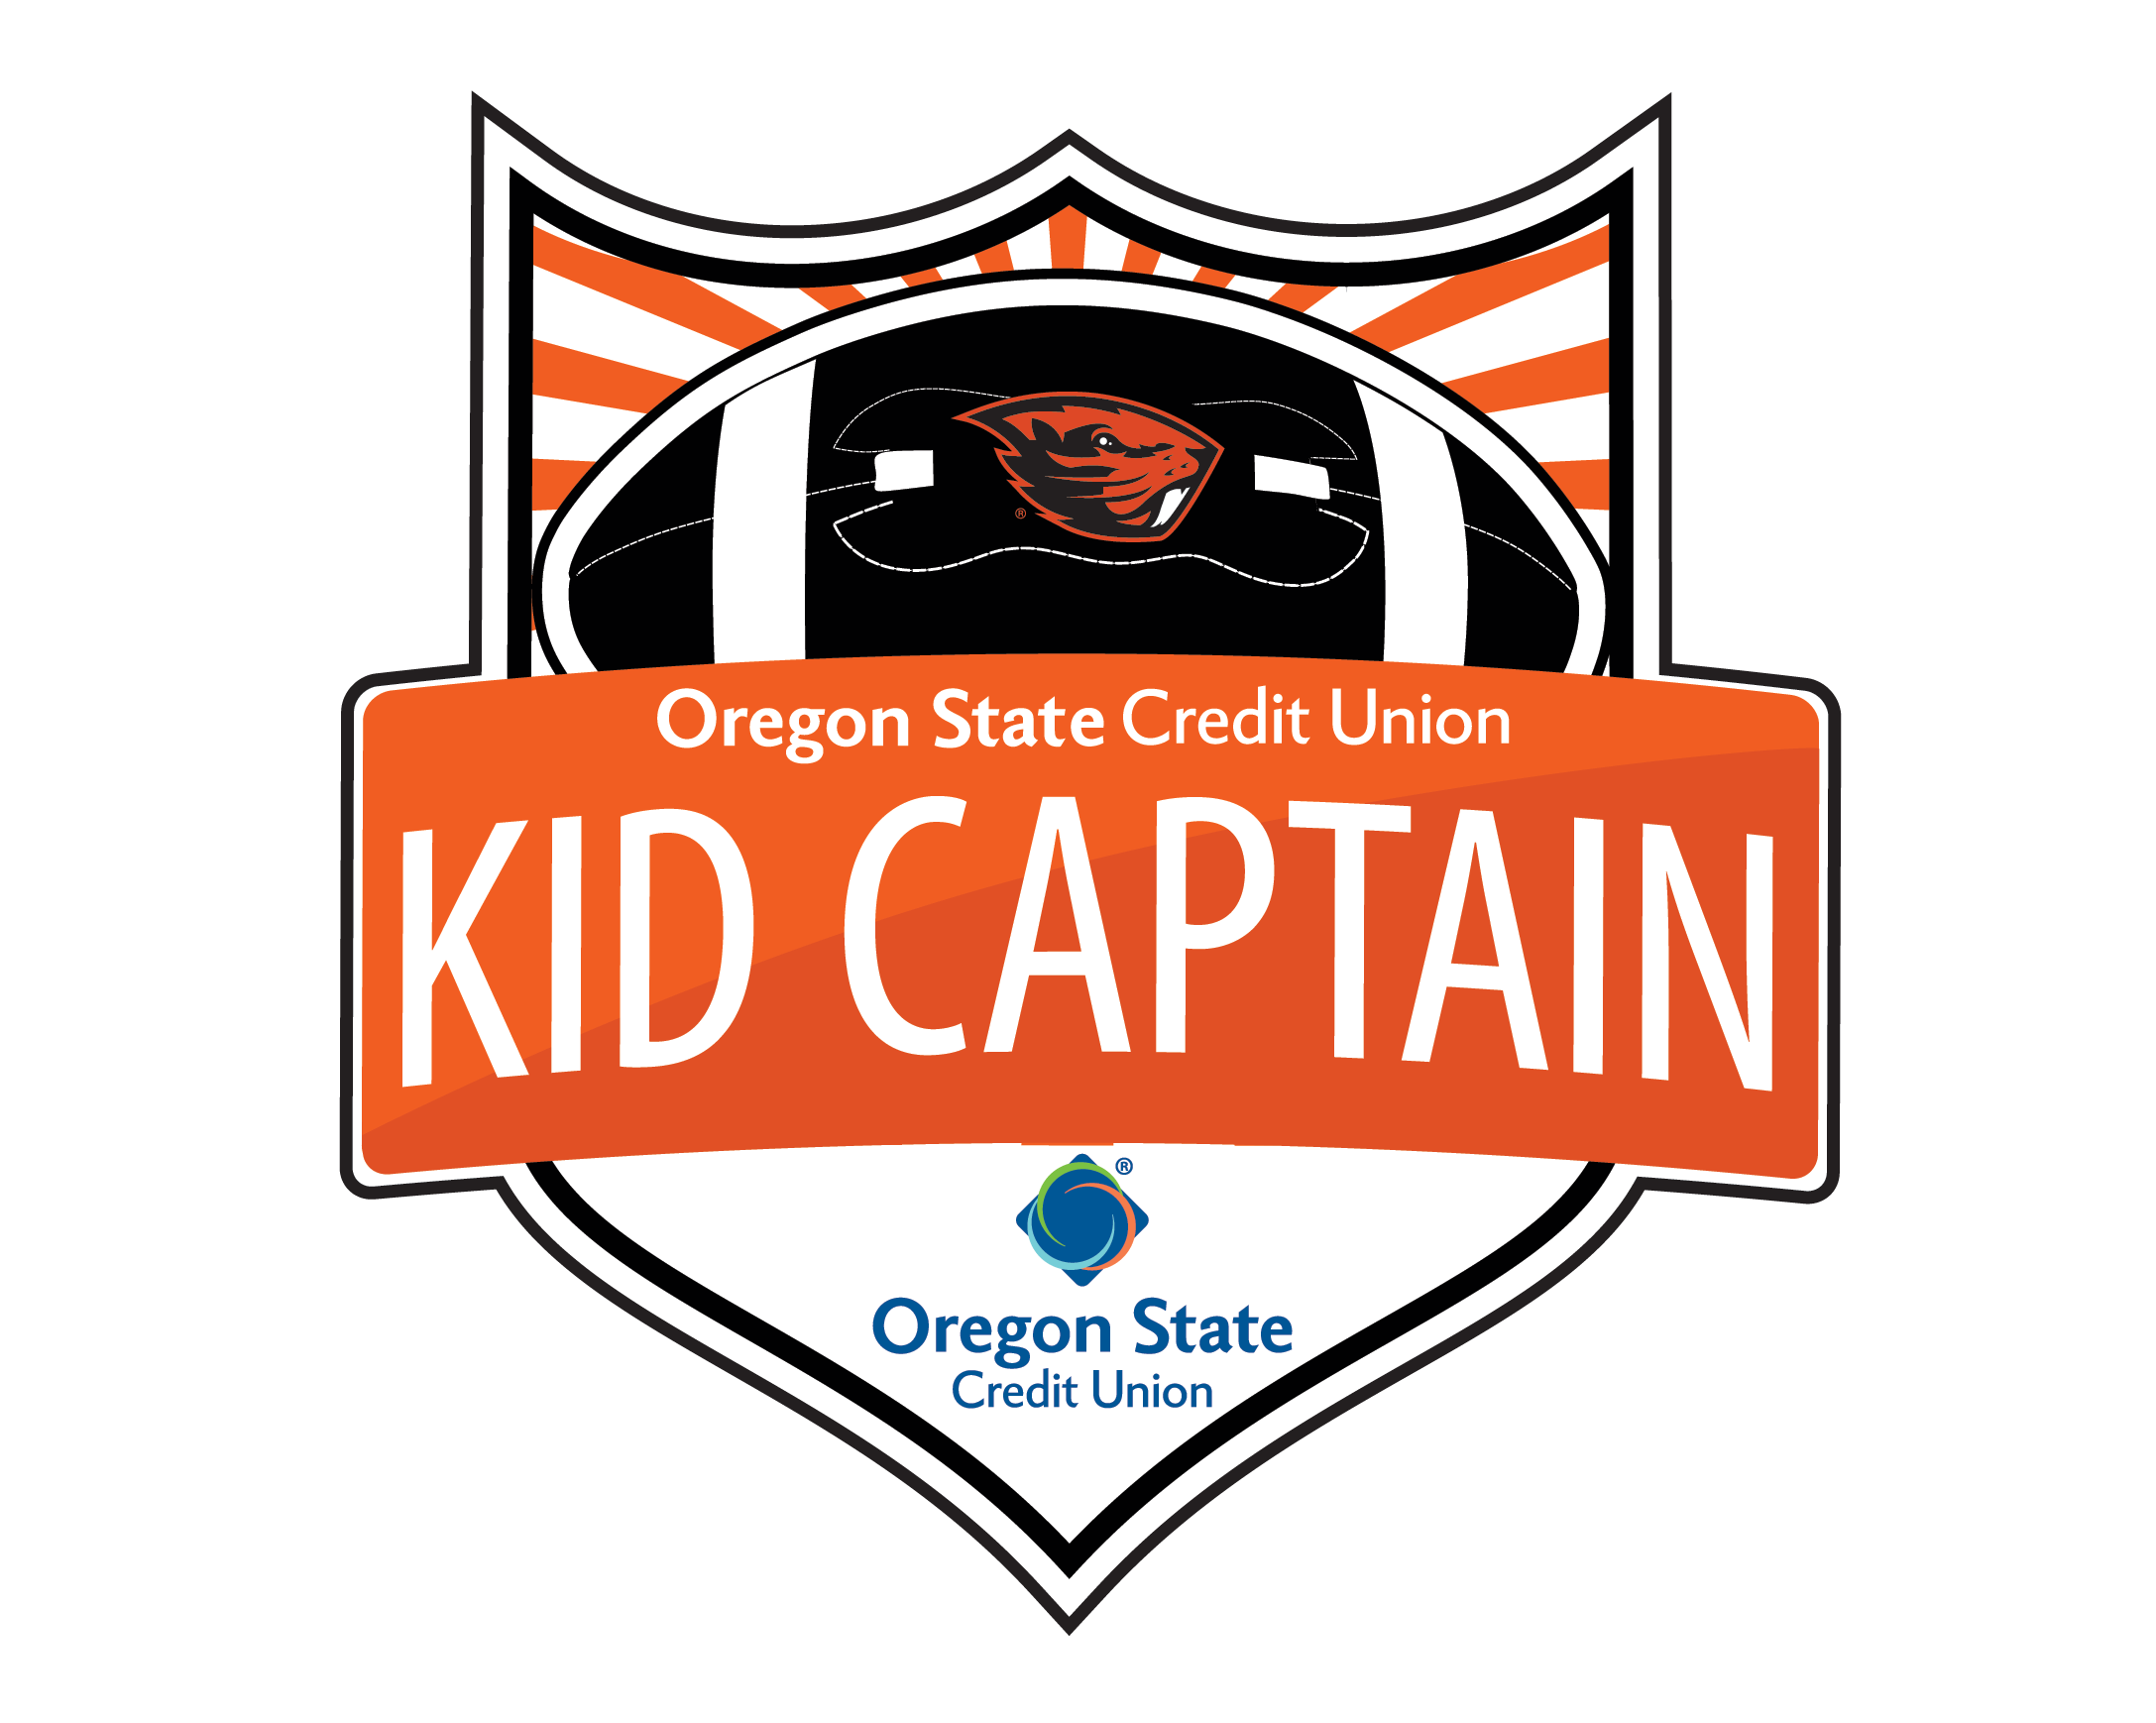 Kid Captain, Oregon State Credit Union